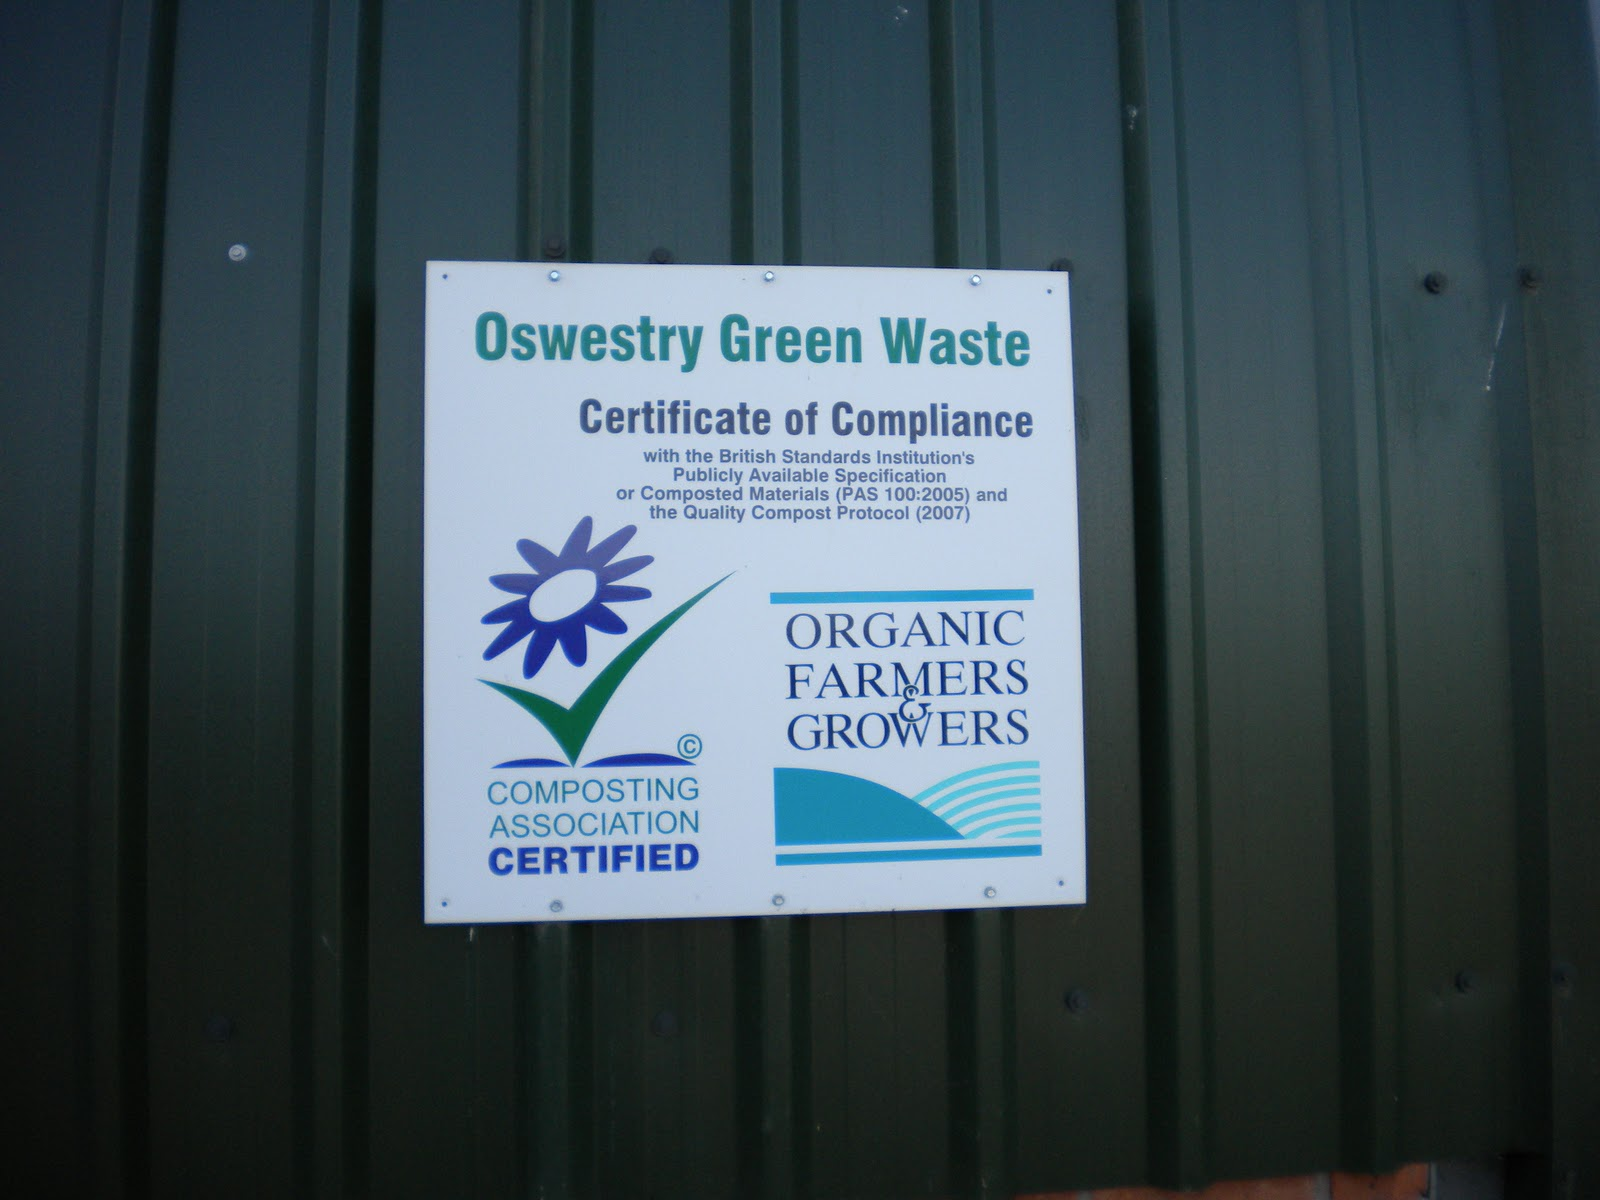 Shropshire Master Composters News March 2011 New Wiring To Basement Flat Conversion Electrical Job In Oswestry Fact Its So Good That The Whole Farm Is Now Using Compost Only And Does Not Need Rely On Artificial Fertilisers Any More